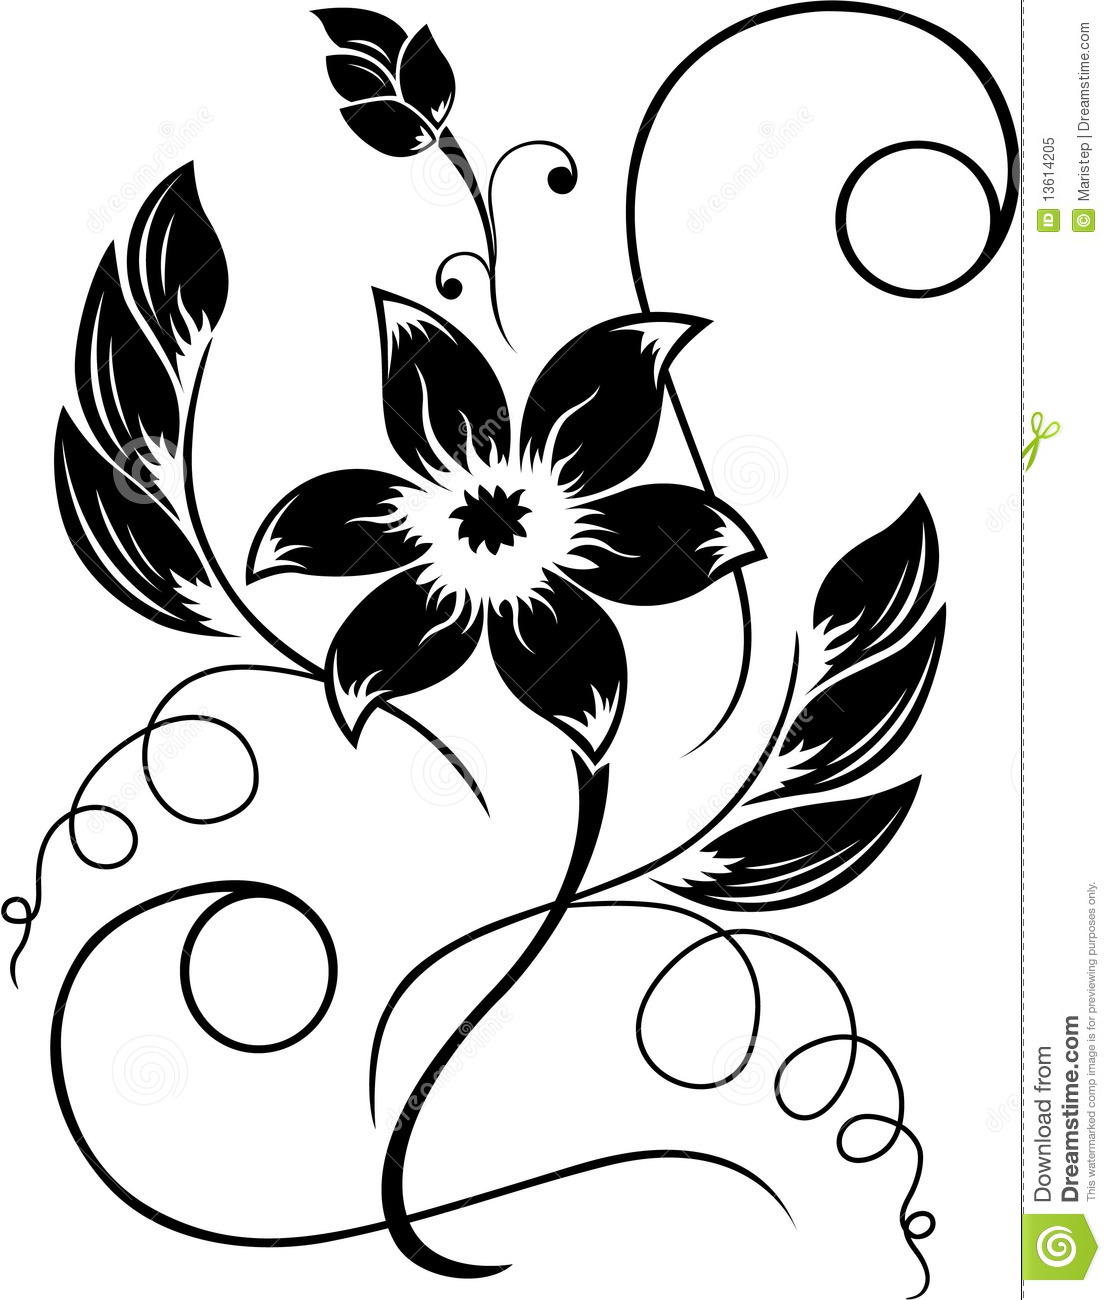 Simple Black and White Drawings